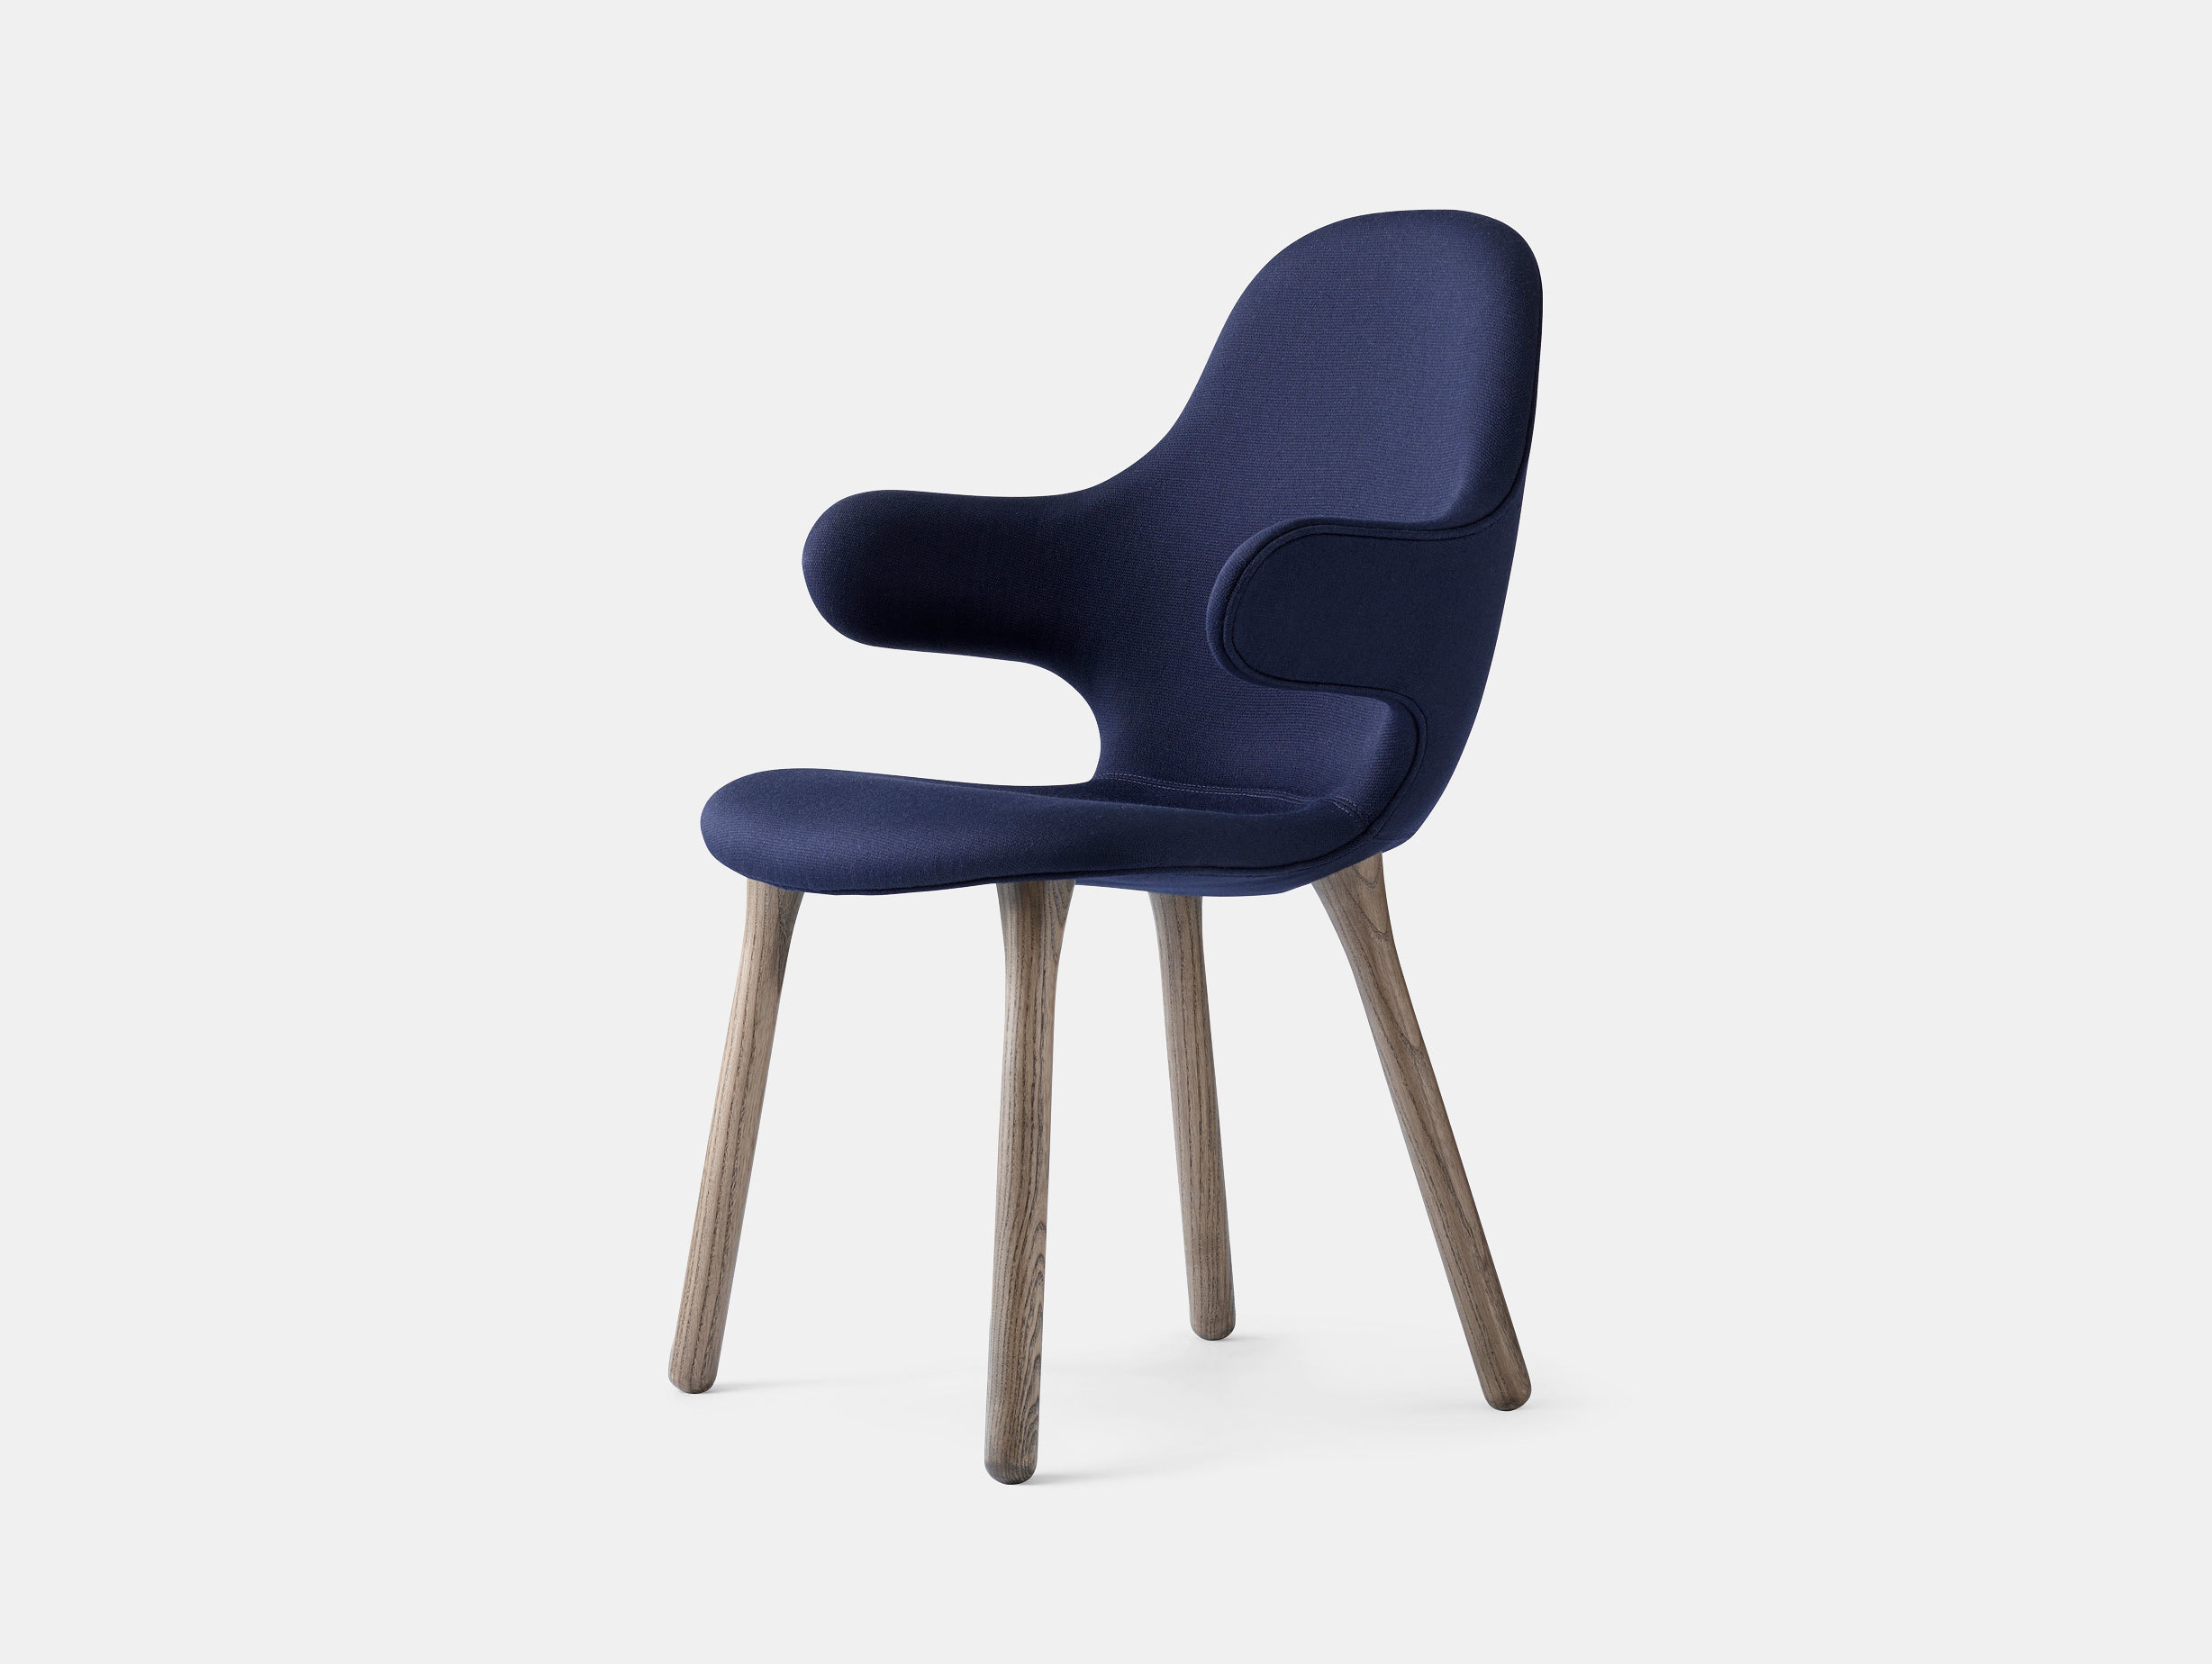 JH1 Catch Chair image 3